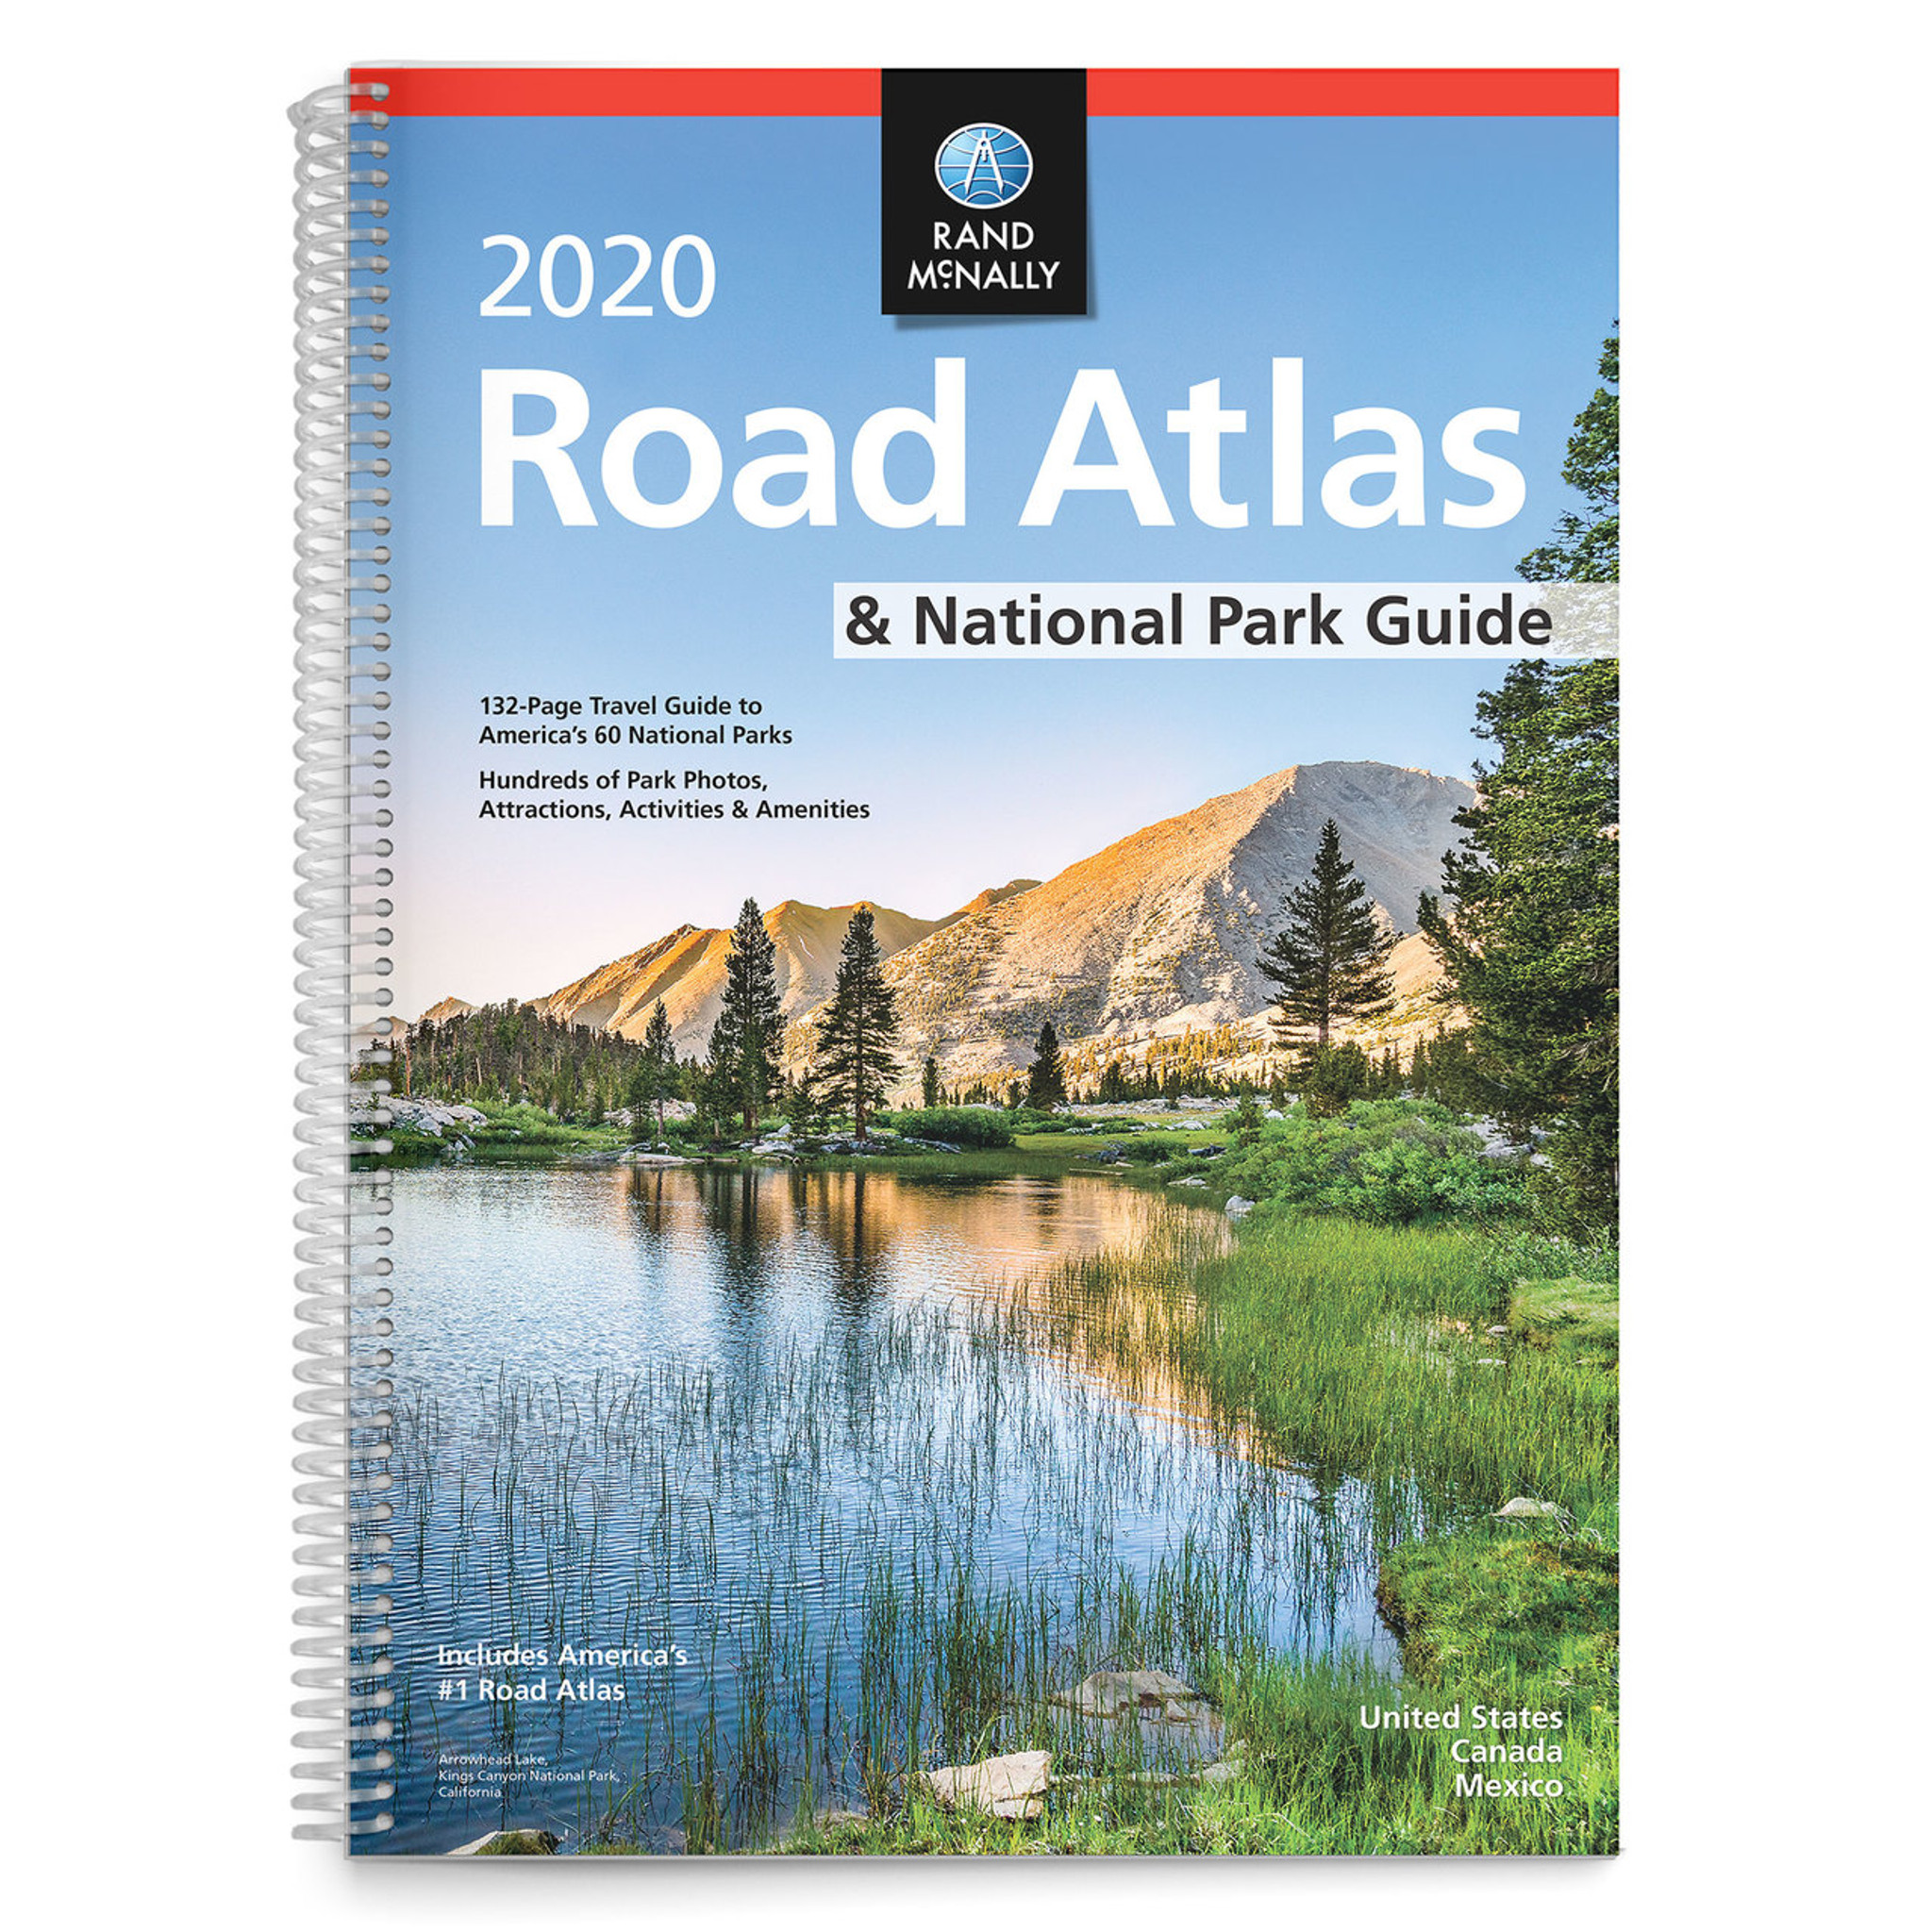 Rand McNally 2020 National Park Atlas & Guide on continents of us, region of us, geography of us, human features of us, culture of us, scale of us, longitude of us, climate of us, latitude of us, physical features of us, rural areas of us, globe of us, mountain range of us, river of us, elevation of us, symbol of us, compass rose of us,